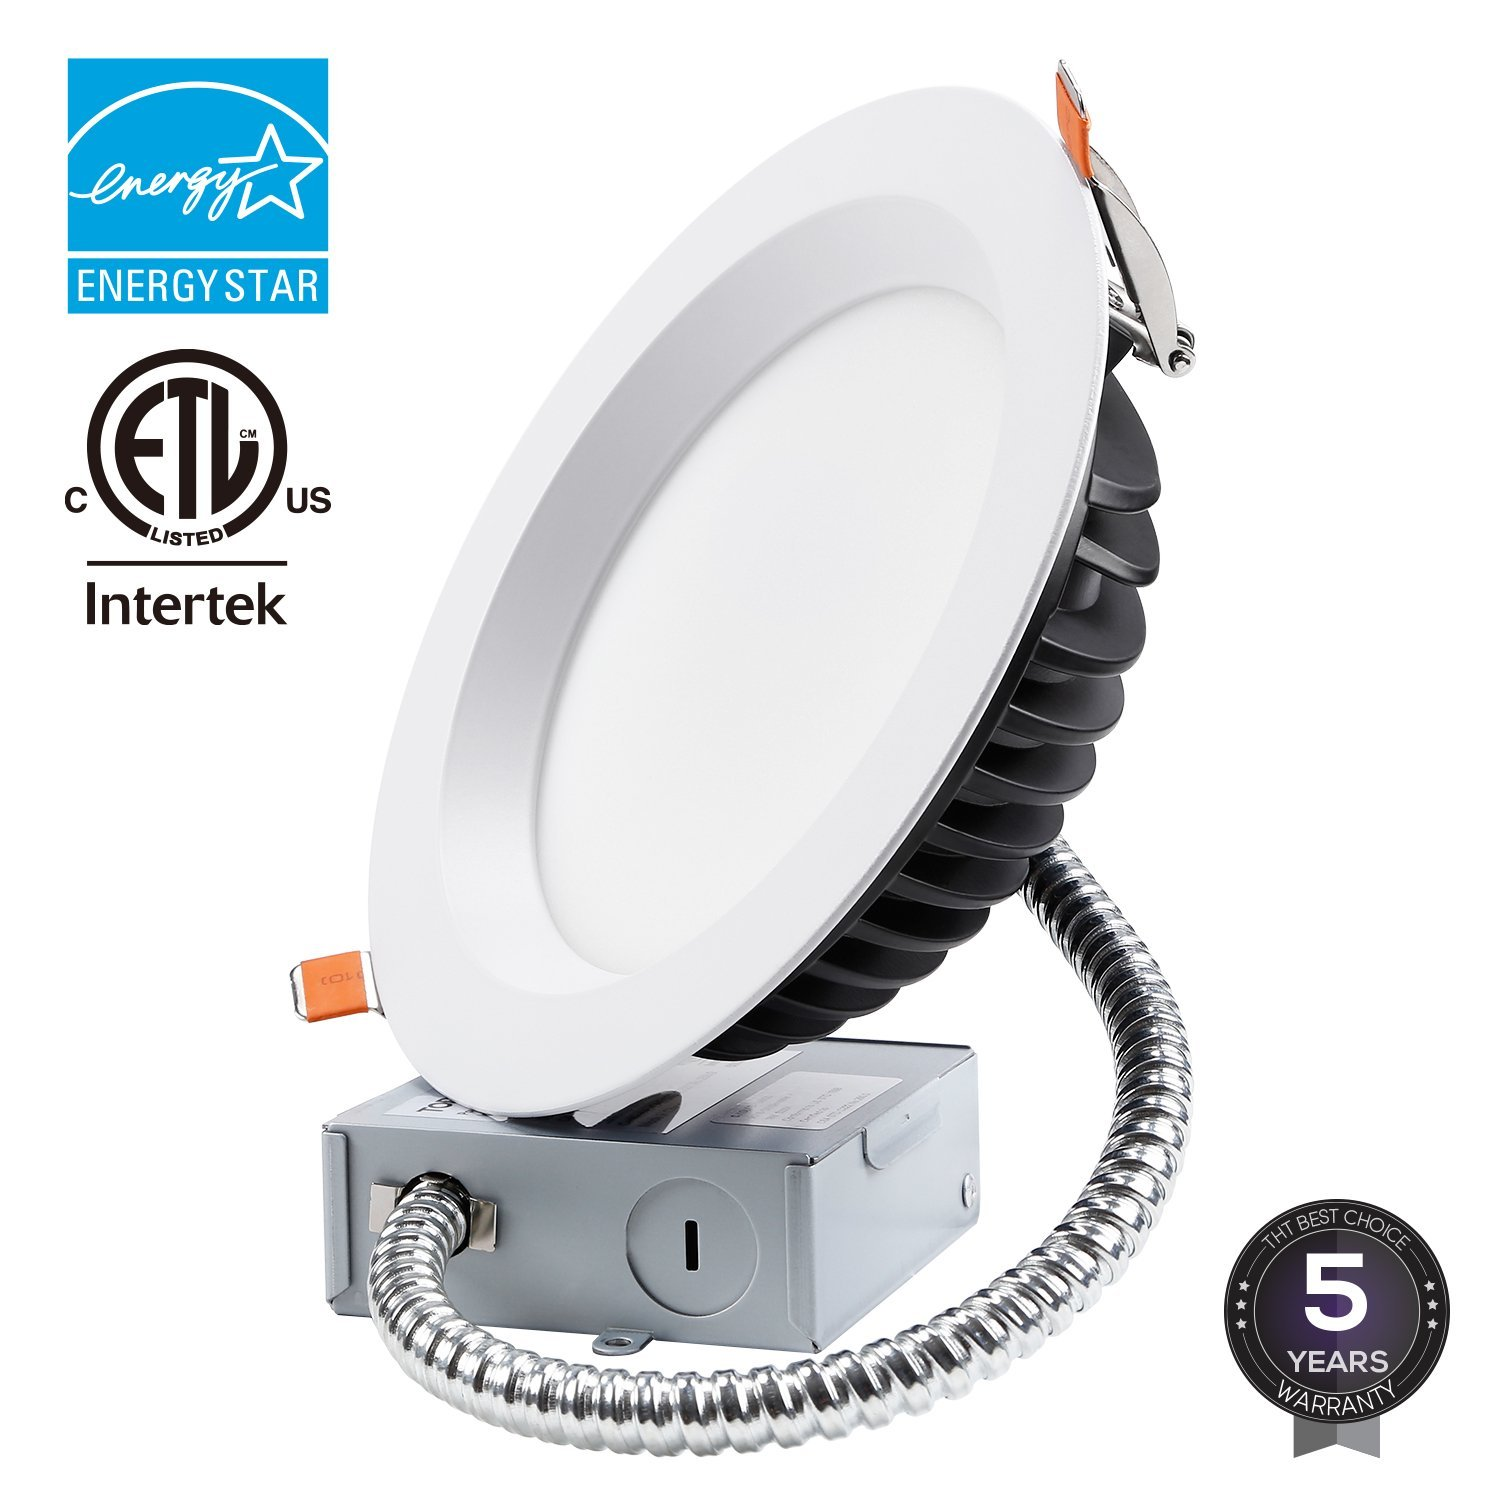 TORCHSTAR 18W 6 inch Slim Recessed Ceiling Light with Junction Box, Dimmable Airtight Downlight, 1500lm Ultra Bright 150W Equivalent ETL Listed and Energy Star Certified, 3000K Warm White